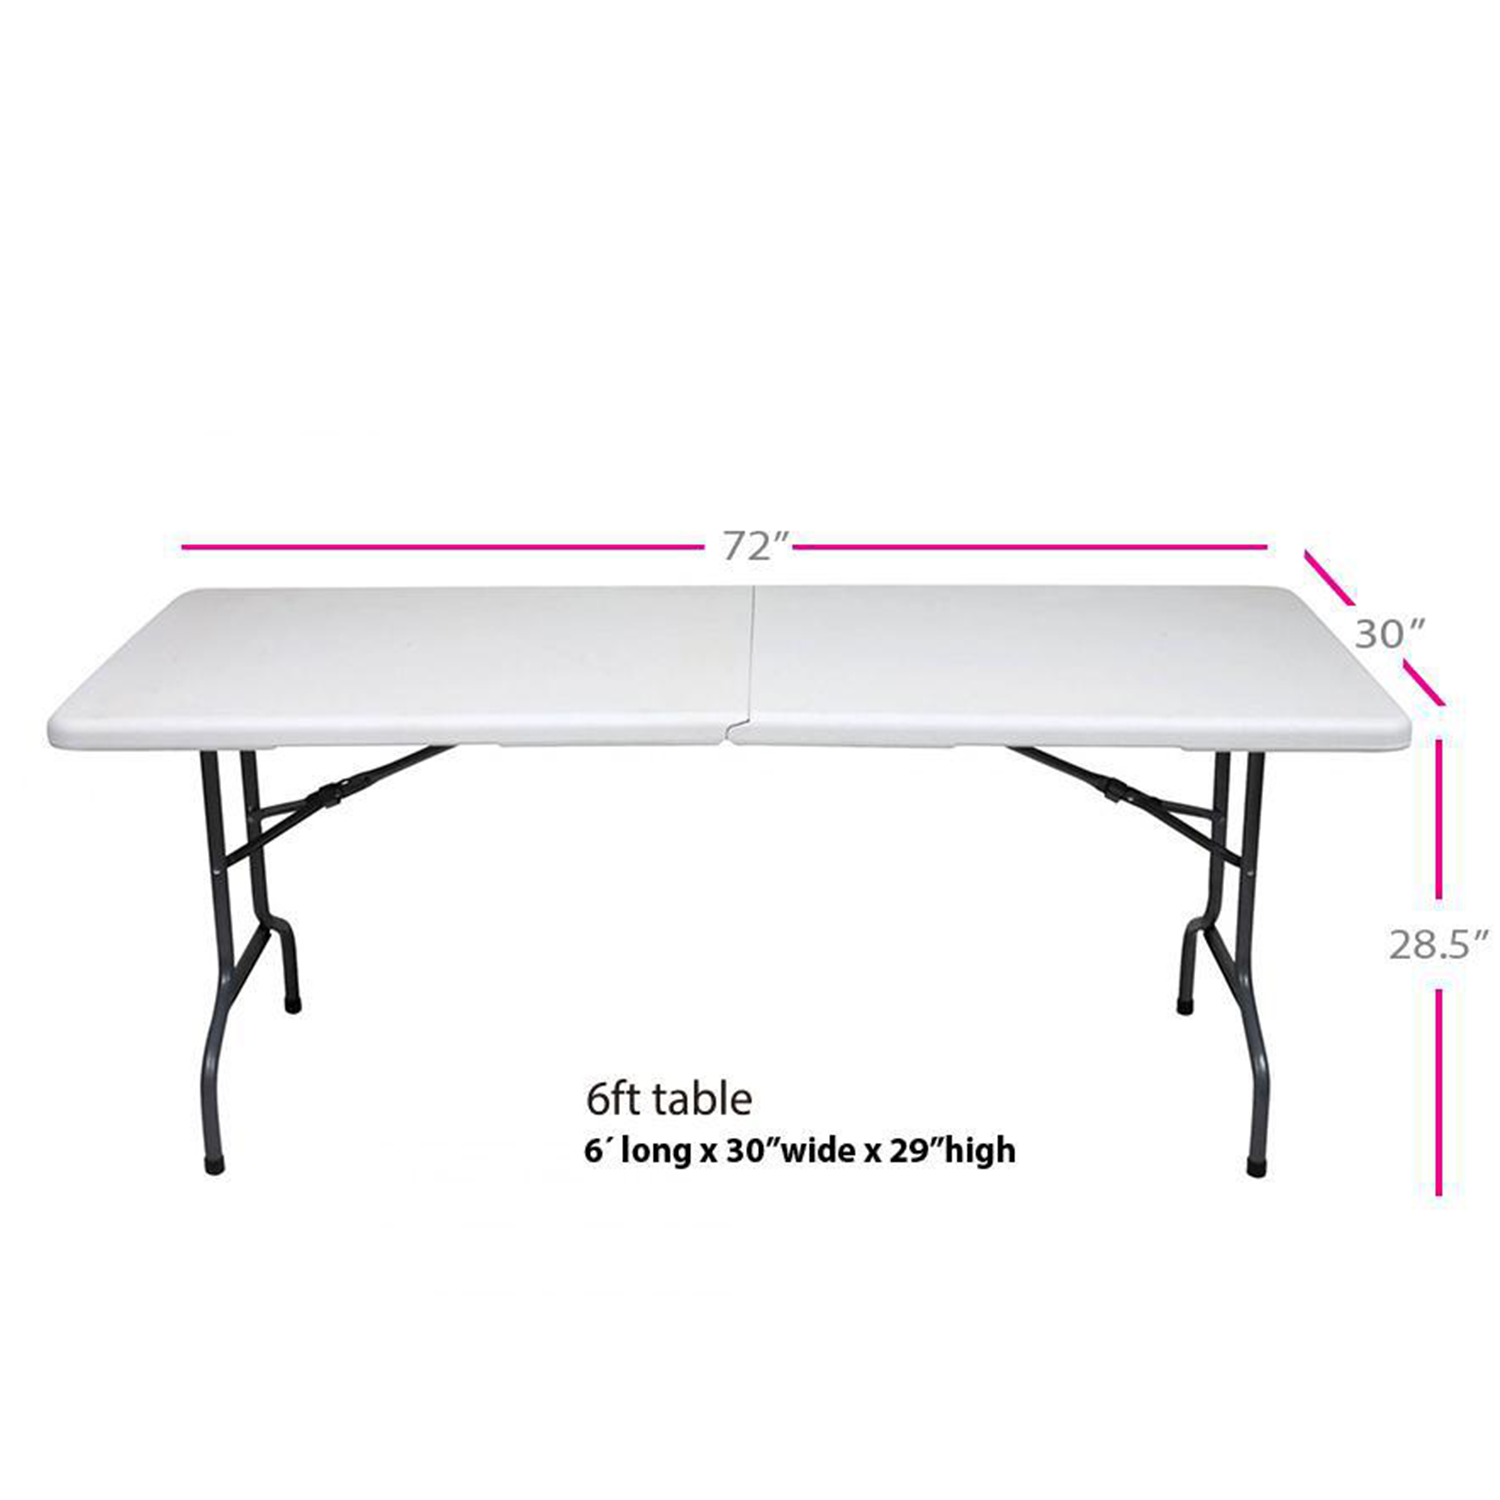 4 Sided 6ft. Stretch Cover (C/R)